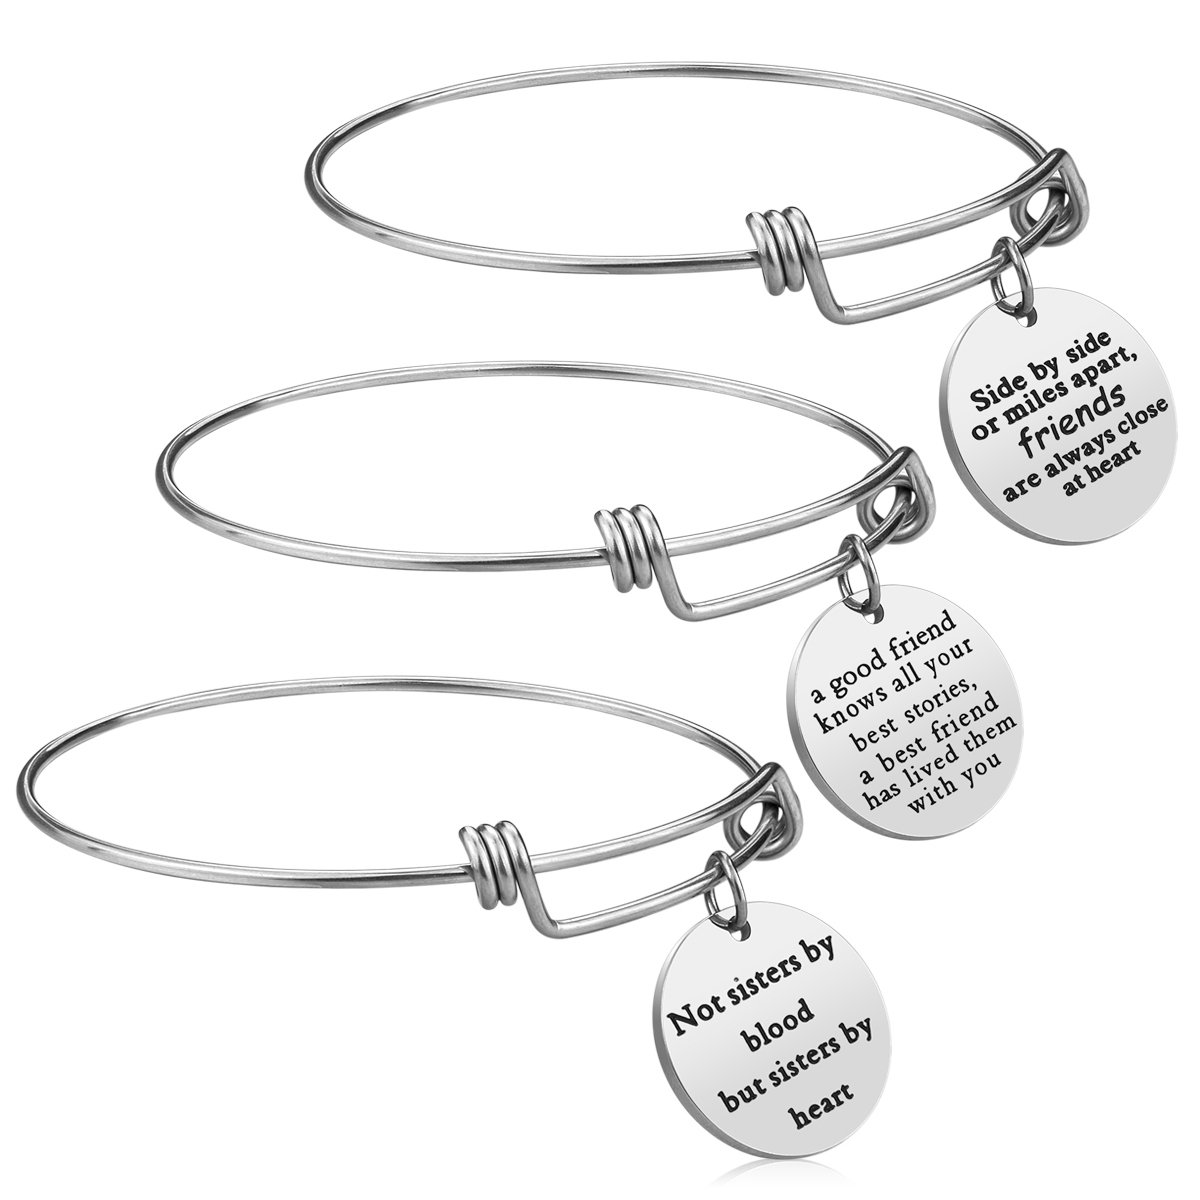 iJuqi Best Friend Gift Charm Bracelet - 3 PCS Stainless Steel Expendable Inspirational Bangle Bracelets BFF Jewelry Set Christmas Gifts Graduation Gifts Birthday Gifts I010BFF-bracelet-3PCS